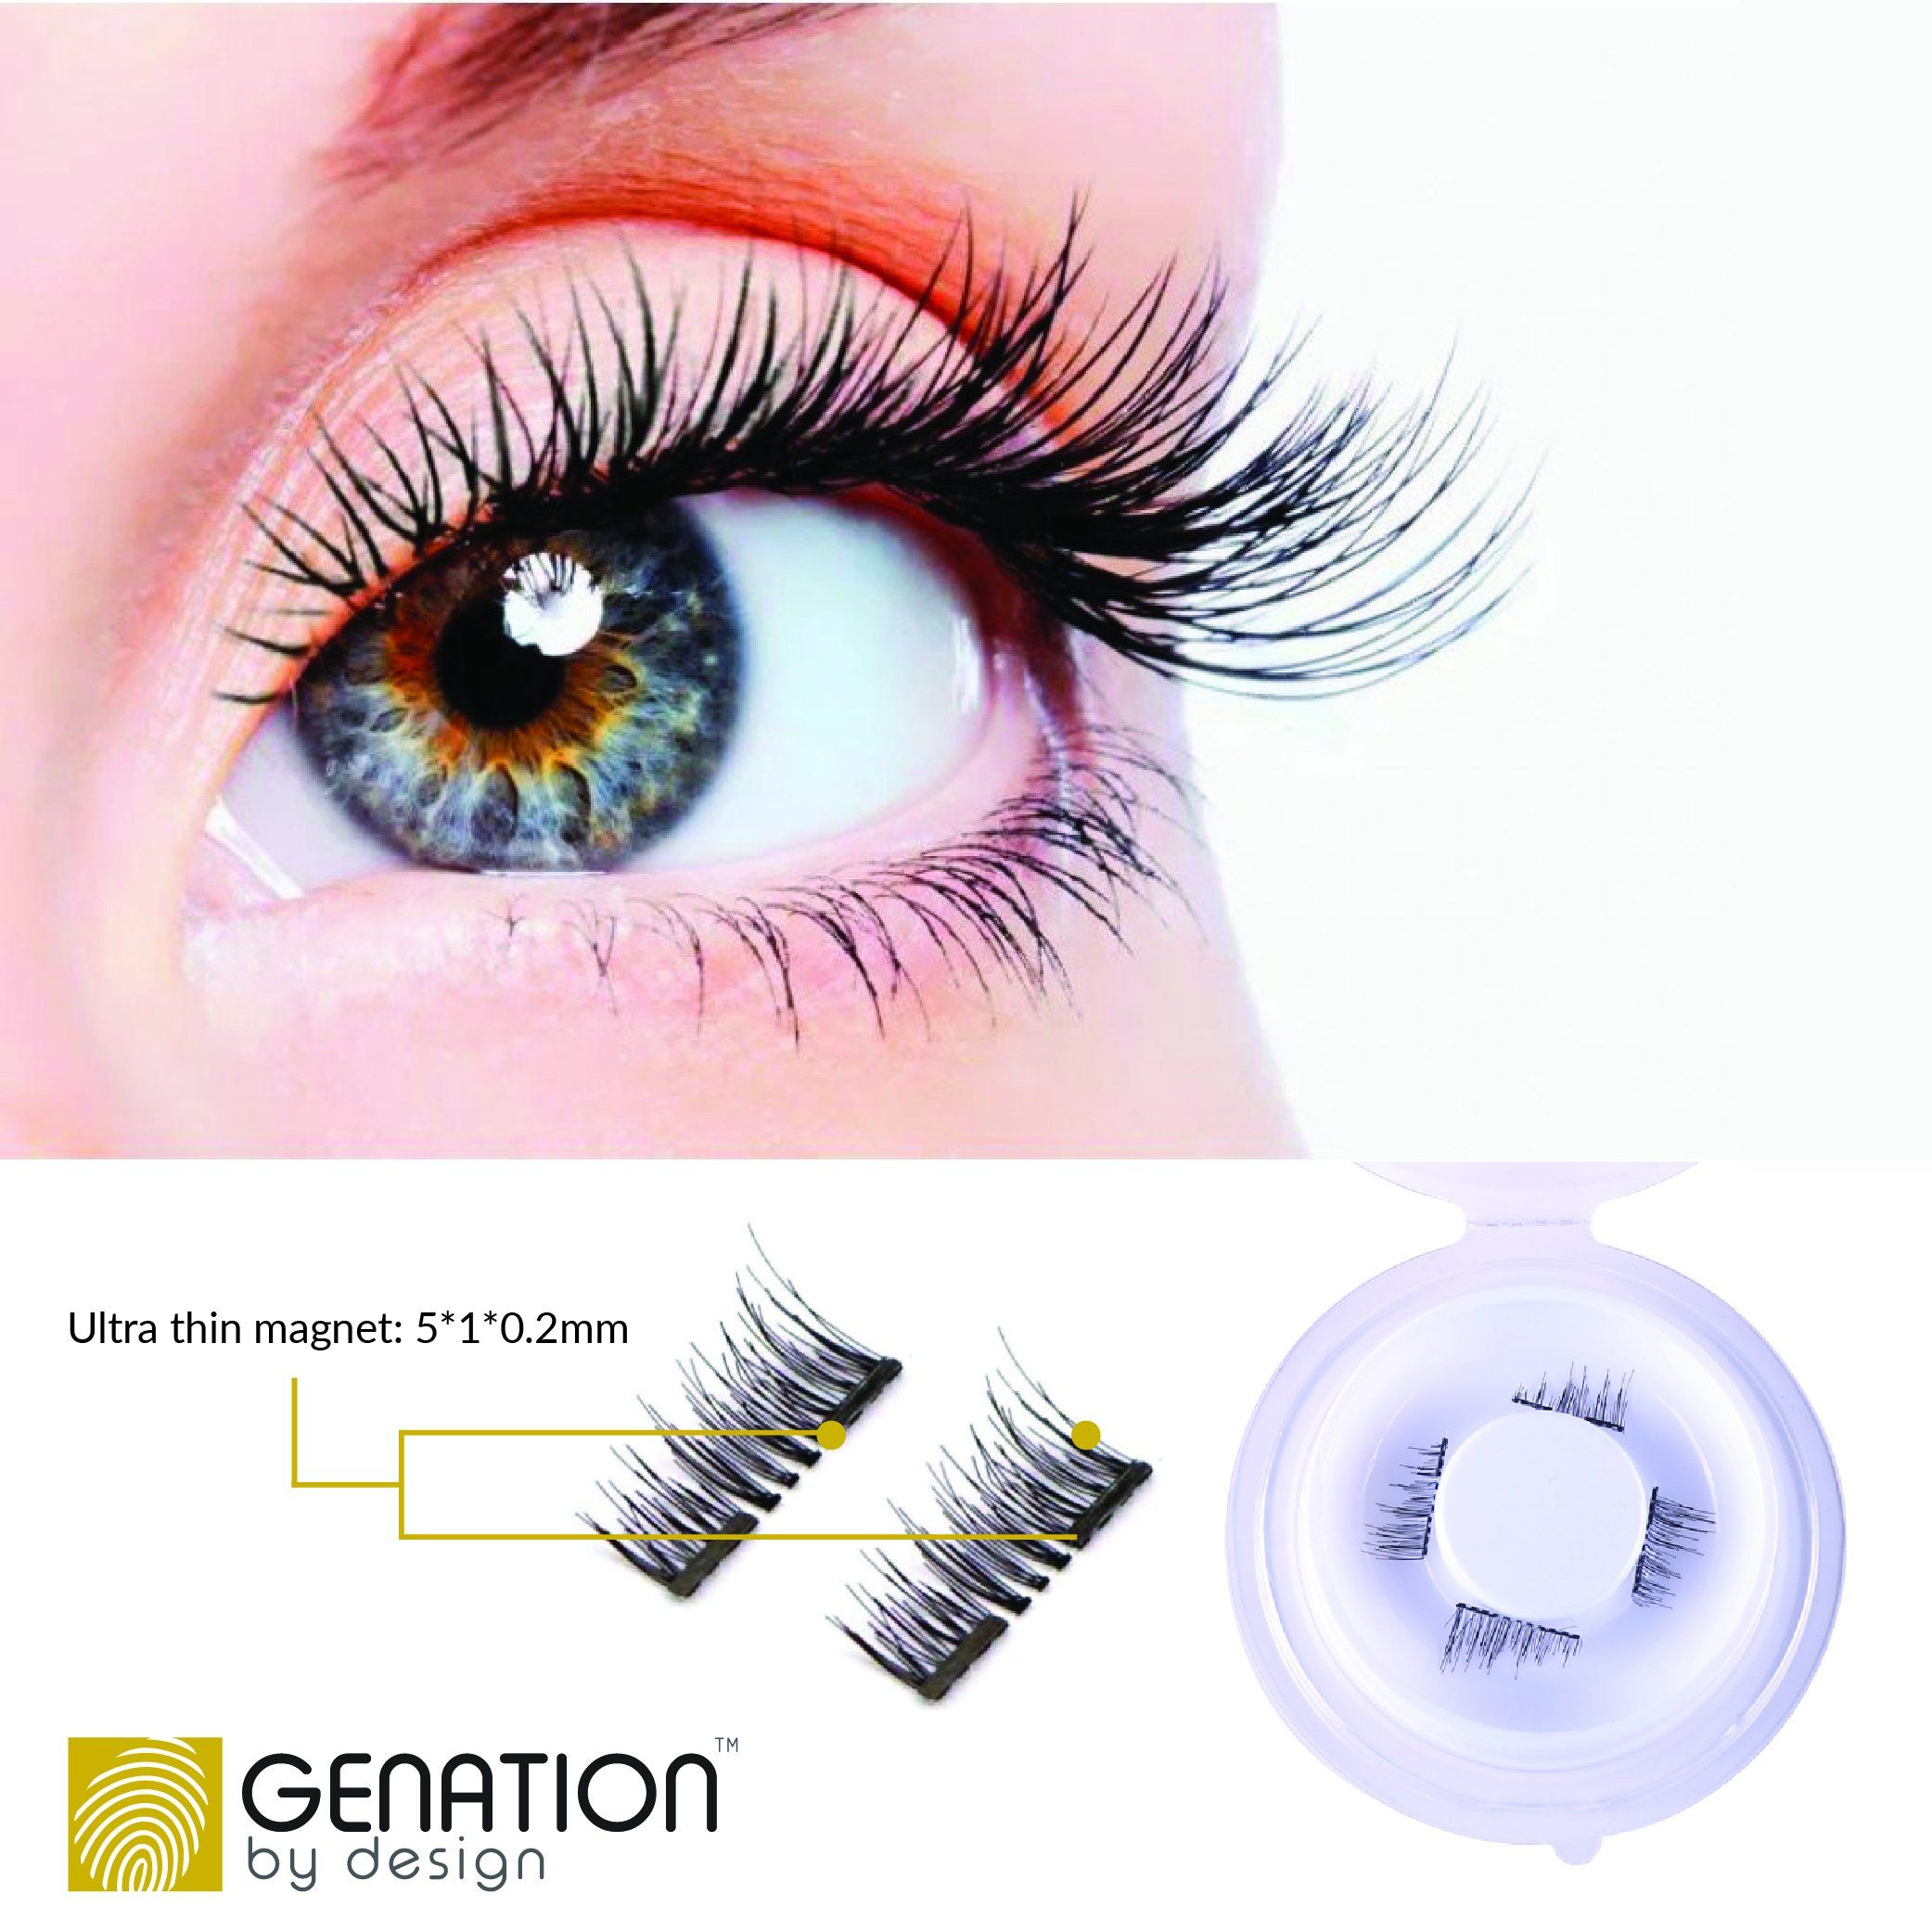 52ffb28cca2 Genation Dual Magnetic False Eyelashes 3D Reusable Best Fake Lashes ?€?  Natural looking Lash Extensions Handmade From Synthetic Flexible Fibers  Dramatic ...